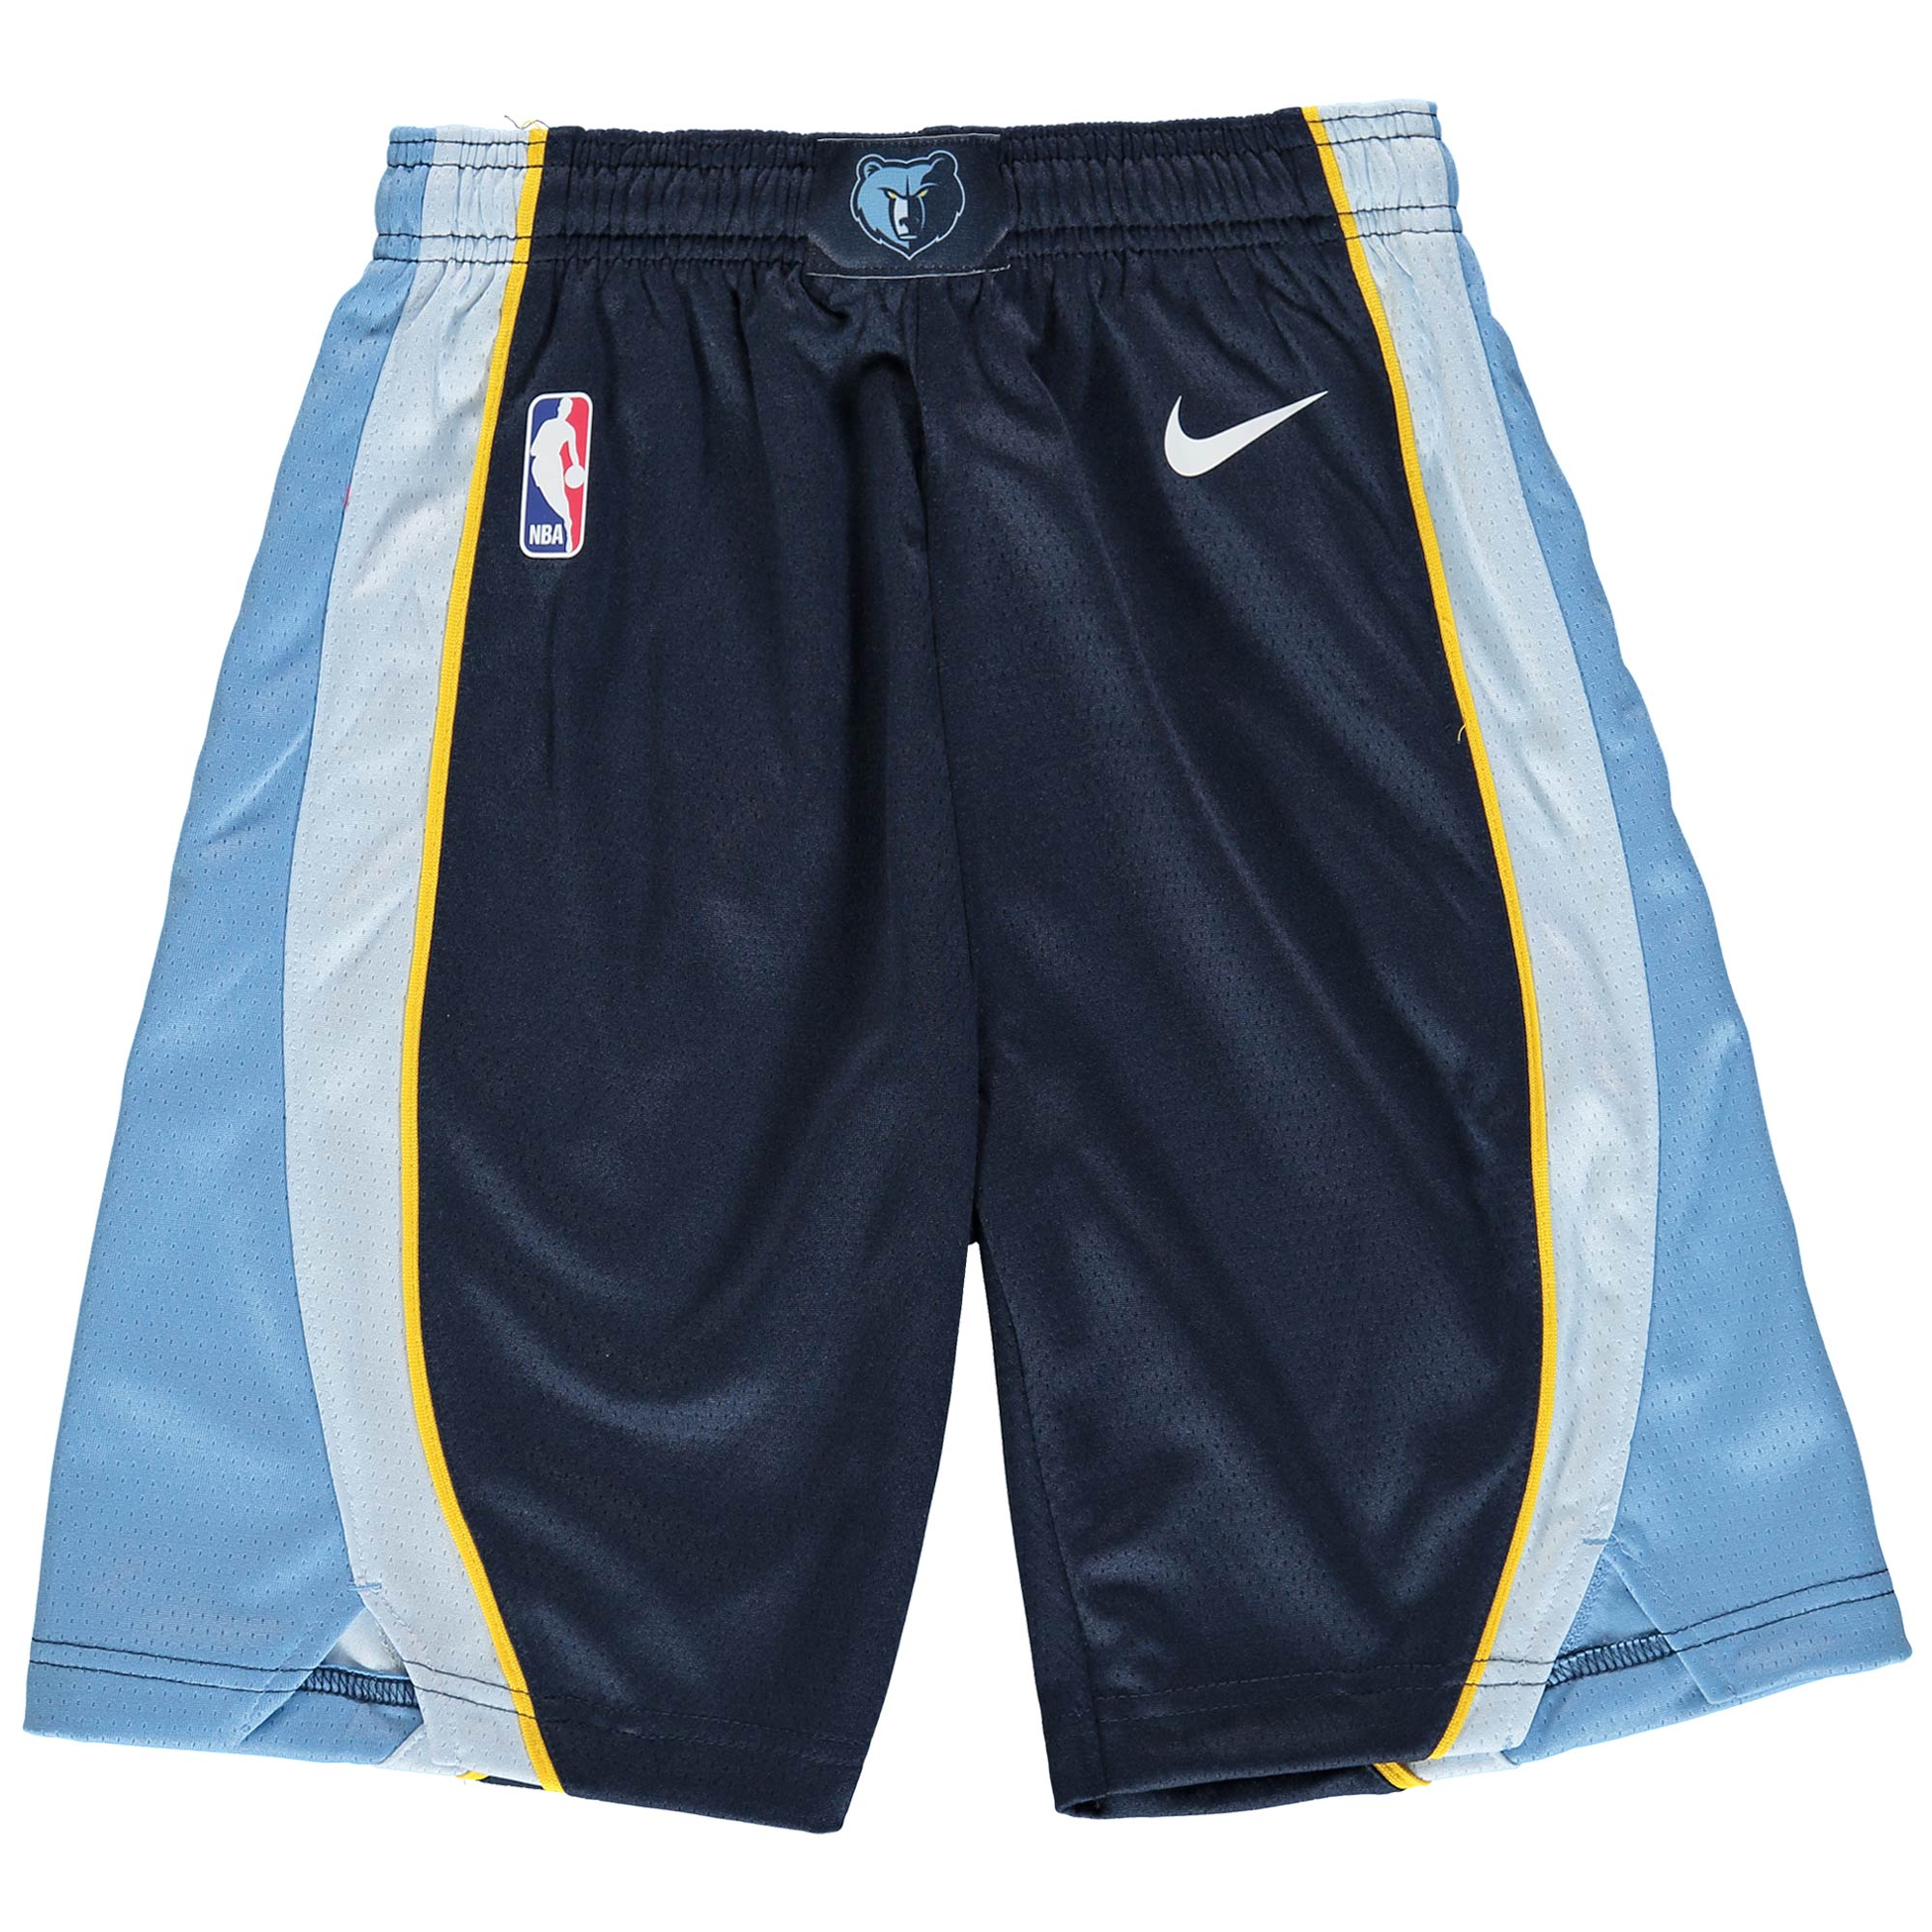 Memphis Grizzlies Nike Youth Swingman Icon Performance Shorts - Navy/Light Blue